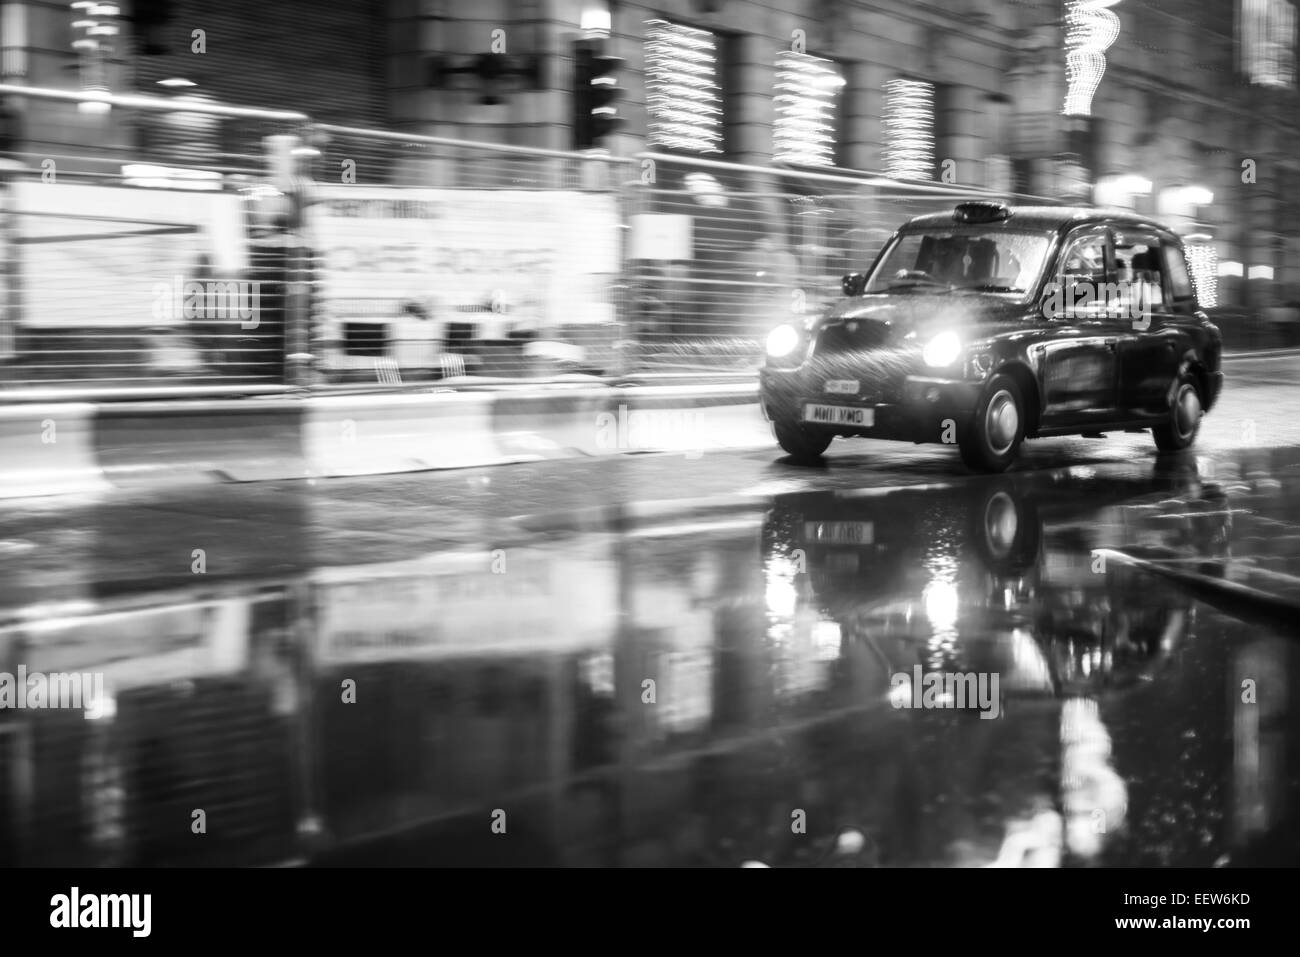 An English taxi makes it's way through the rain. - Stock Image